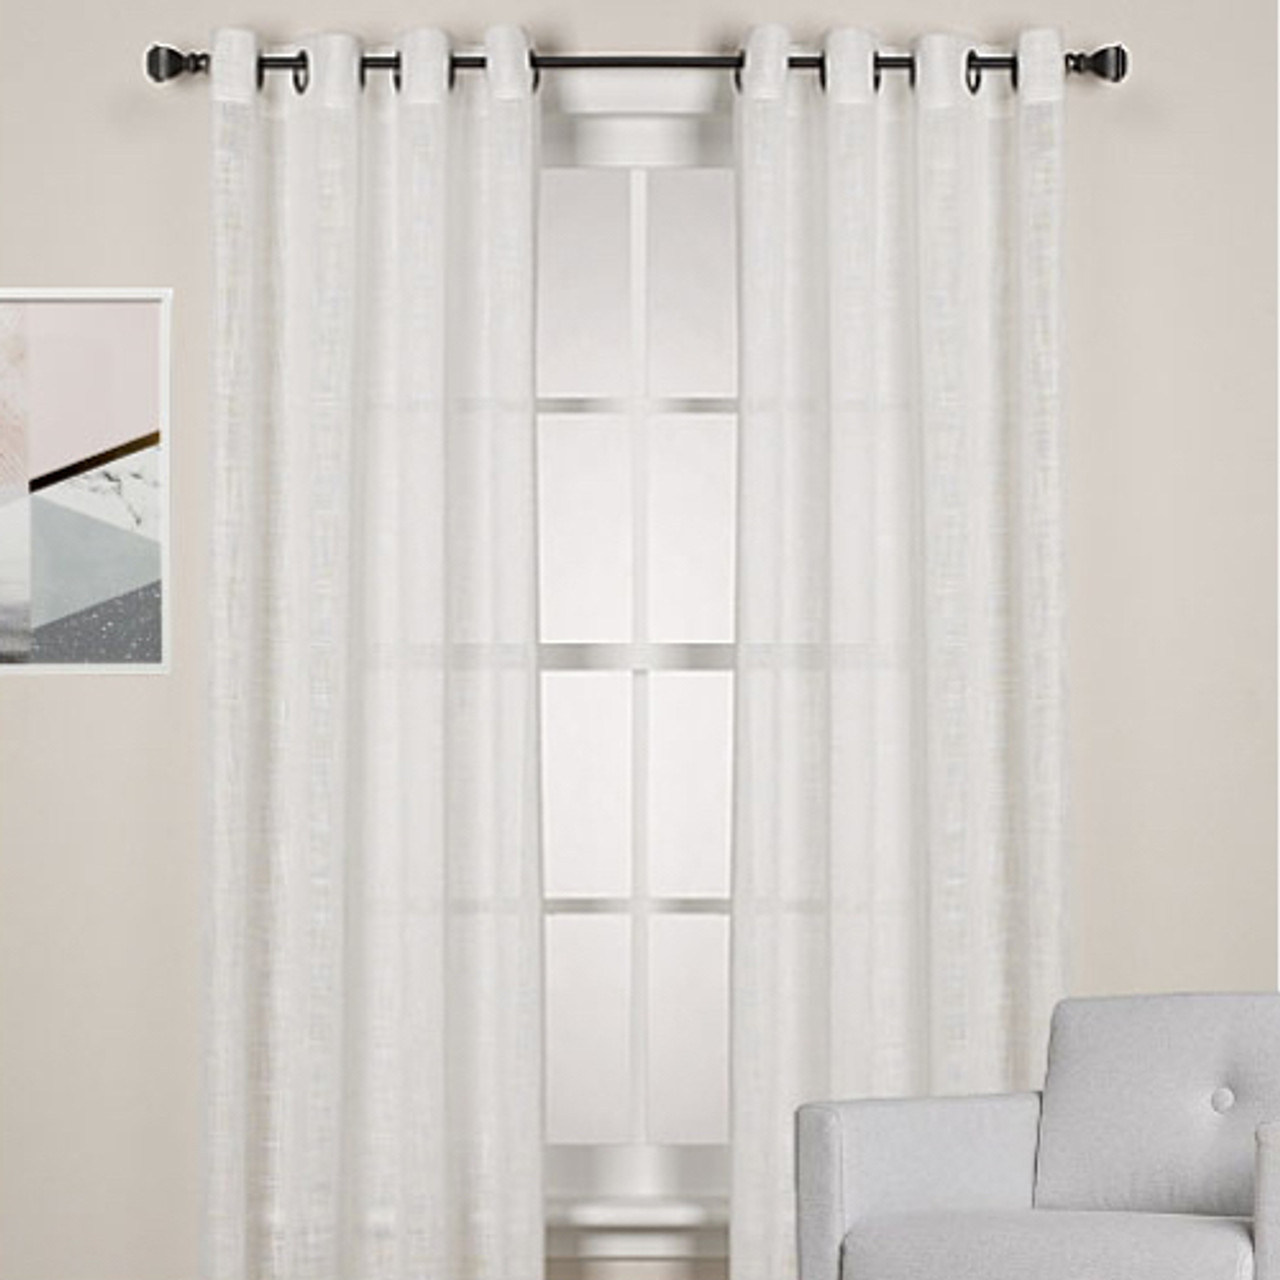 Homespun Linen Look Sheer Eyelet Curtain Panel White